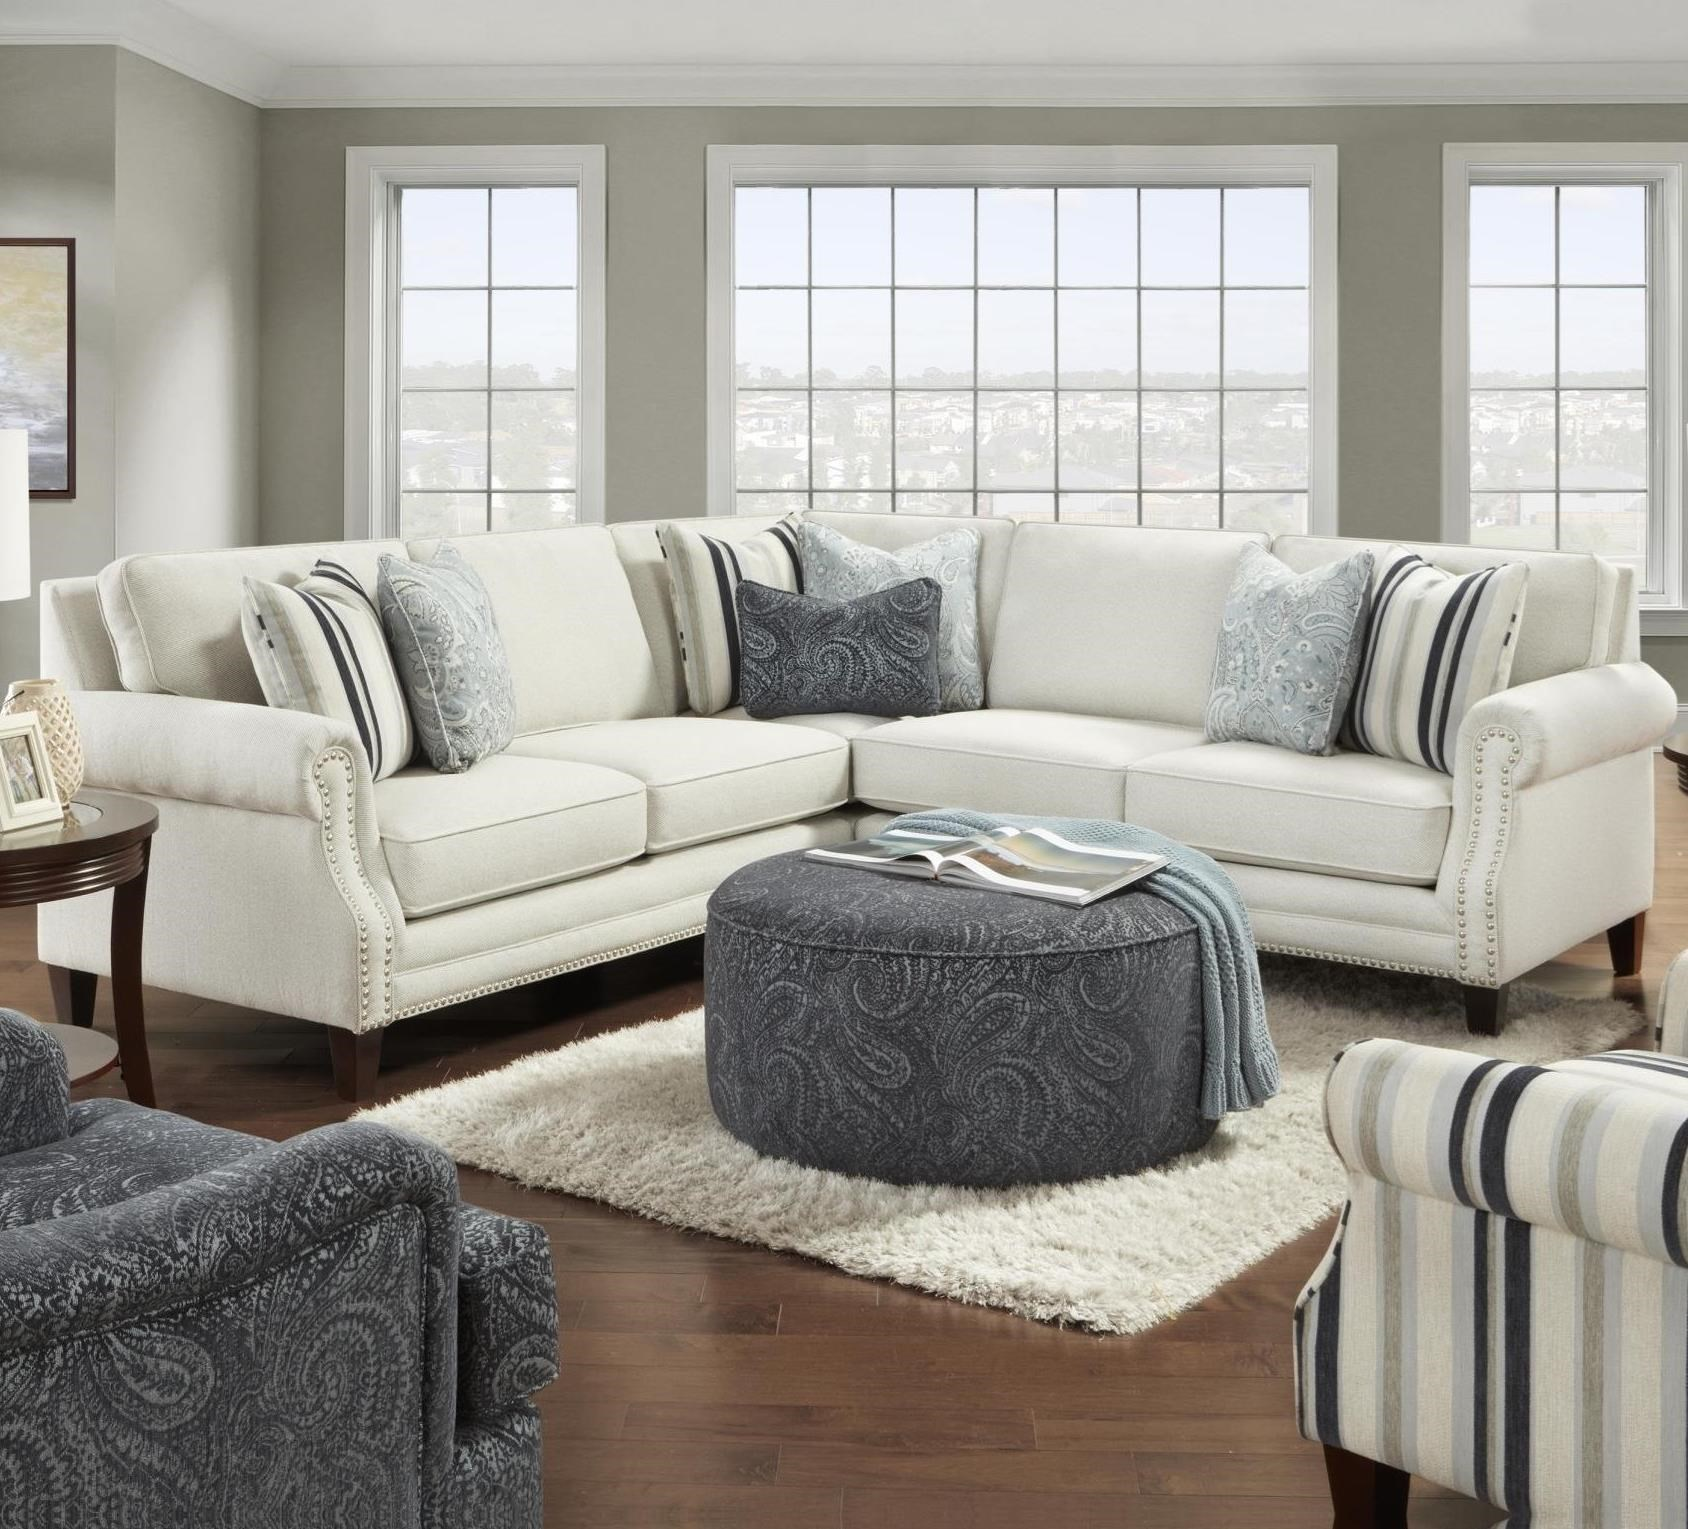 2530 4-Seat Sectional Sofa by Fusion Furniture at Prime Brothers Furniture